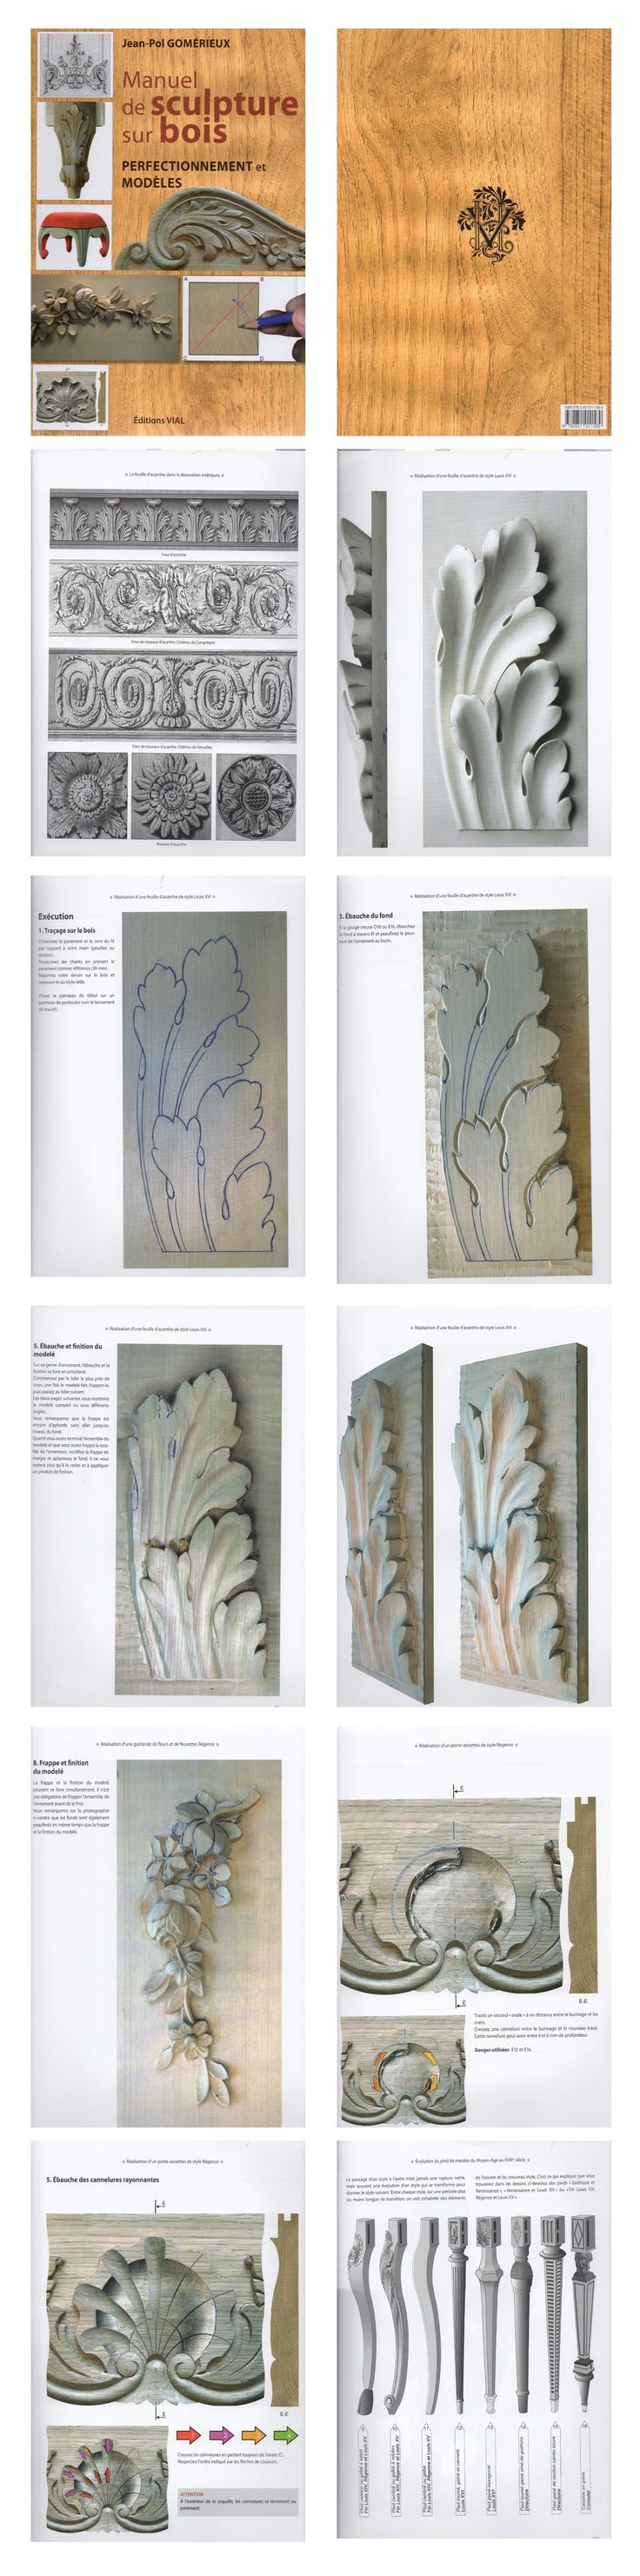 78 images about filigree scrolls patterns acanthus leaf script on pinterest baroque - Sculpture sur bois ...